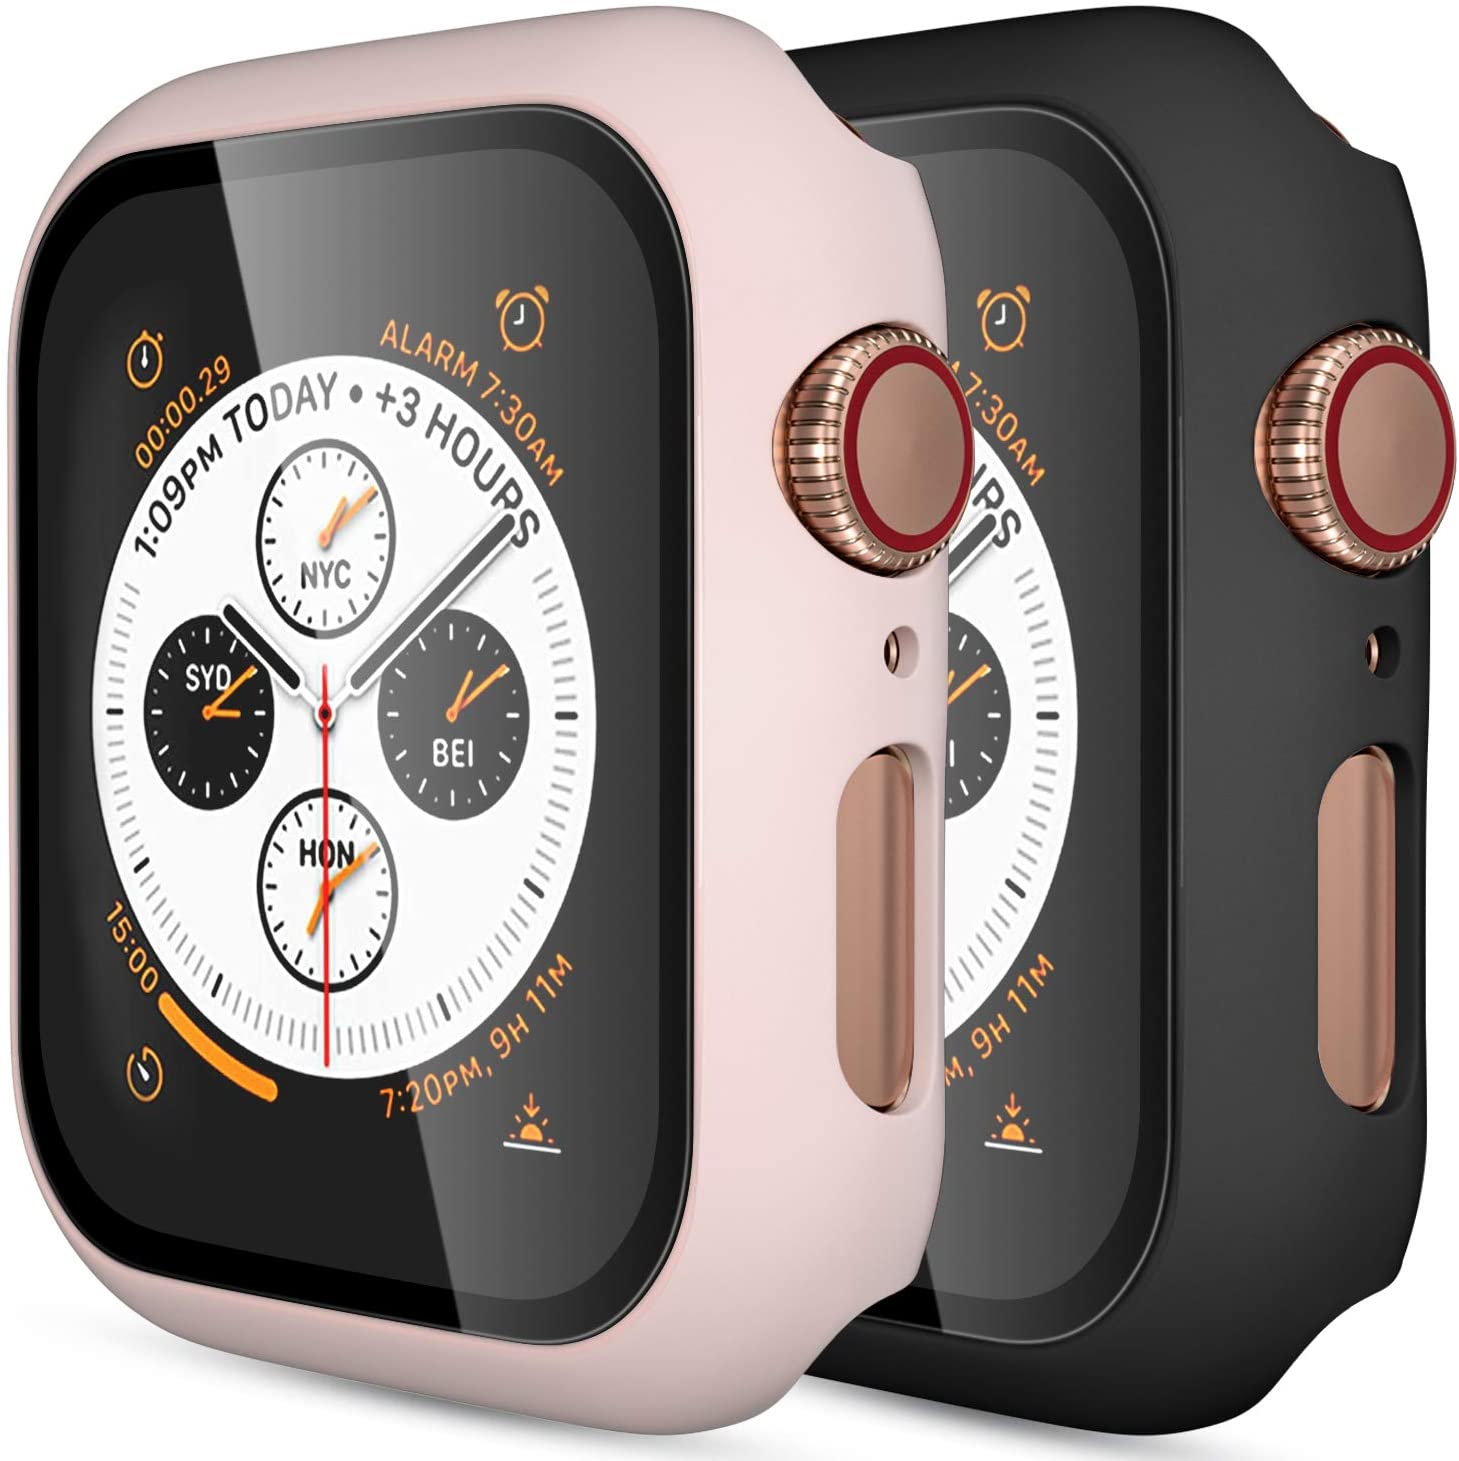 (2 Pack) GEAK Hard Case for Apple Watch 44mm Series 5 with Screen Protector, Full Body Protective Bumper Case Cover for iWatch Series 5/4, Black/Pink